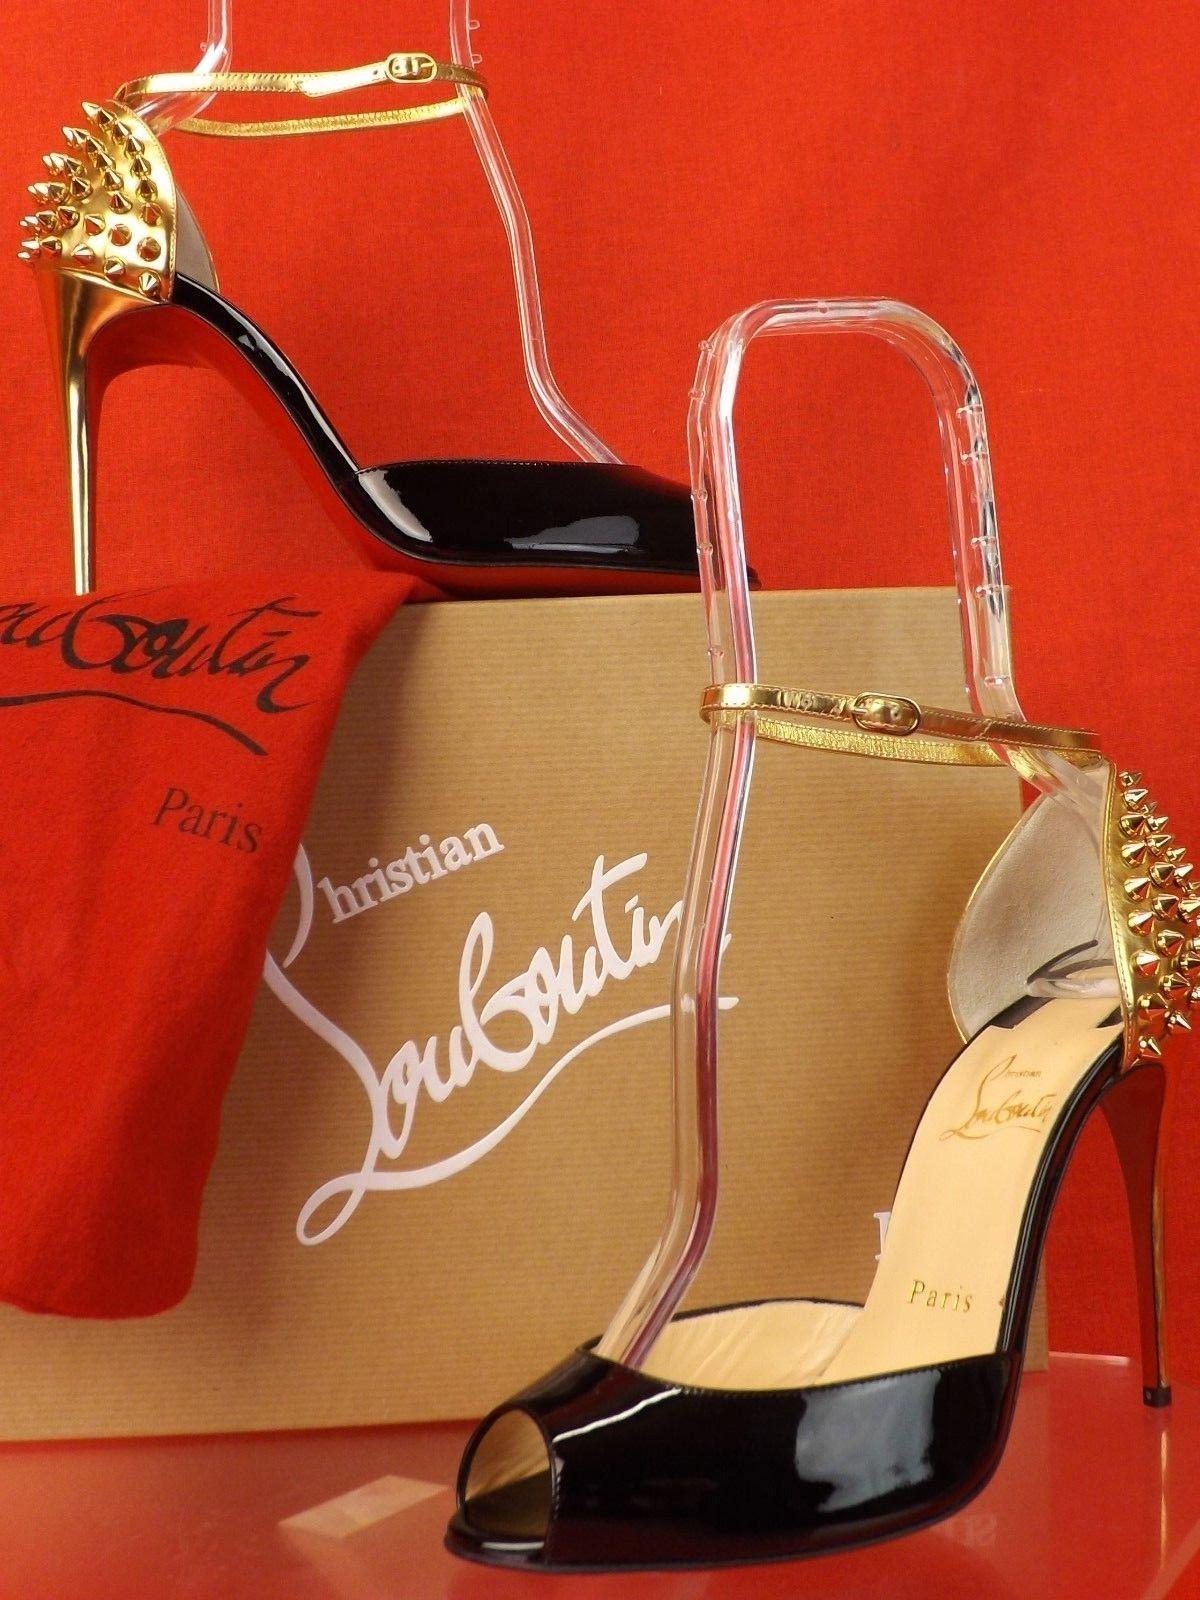 31a72f80c9f7 ... Christian Christian Christian Louboutin Black Gold Pina Spike 100  Patent Leather Pumps Size US 7.5 ...